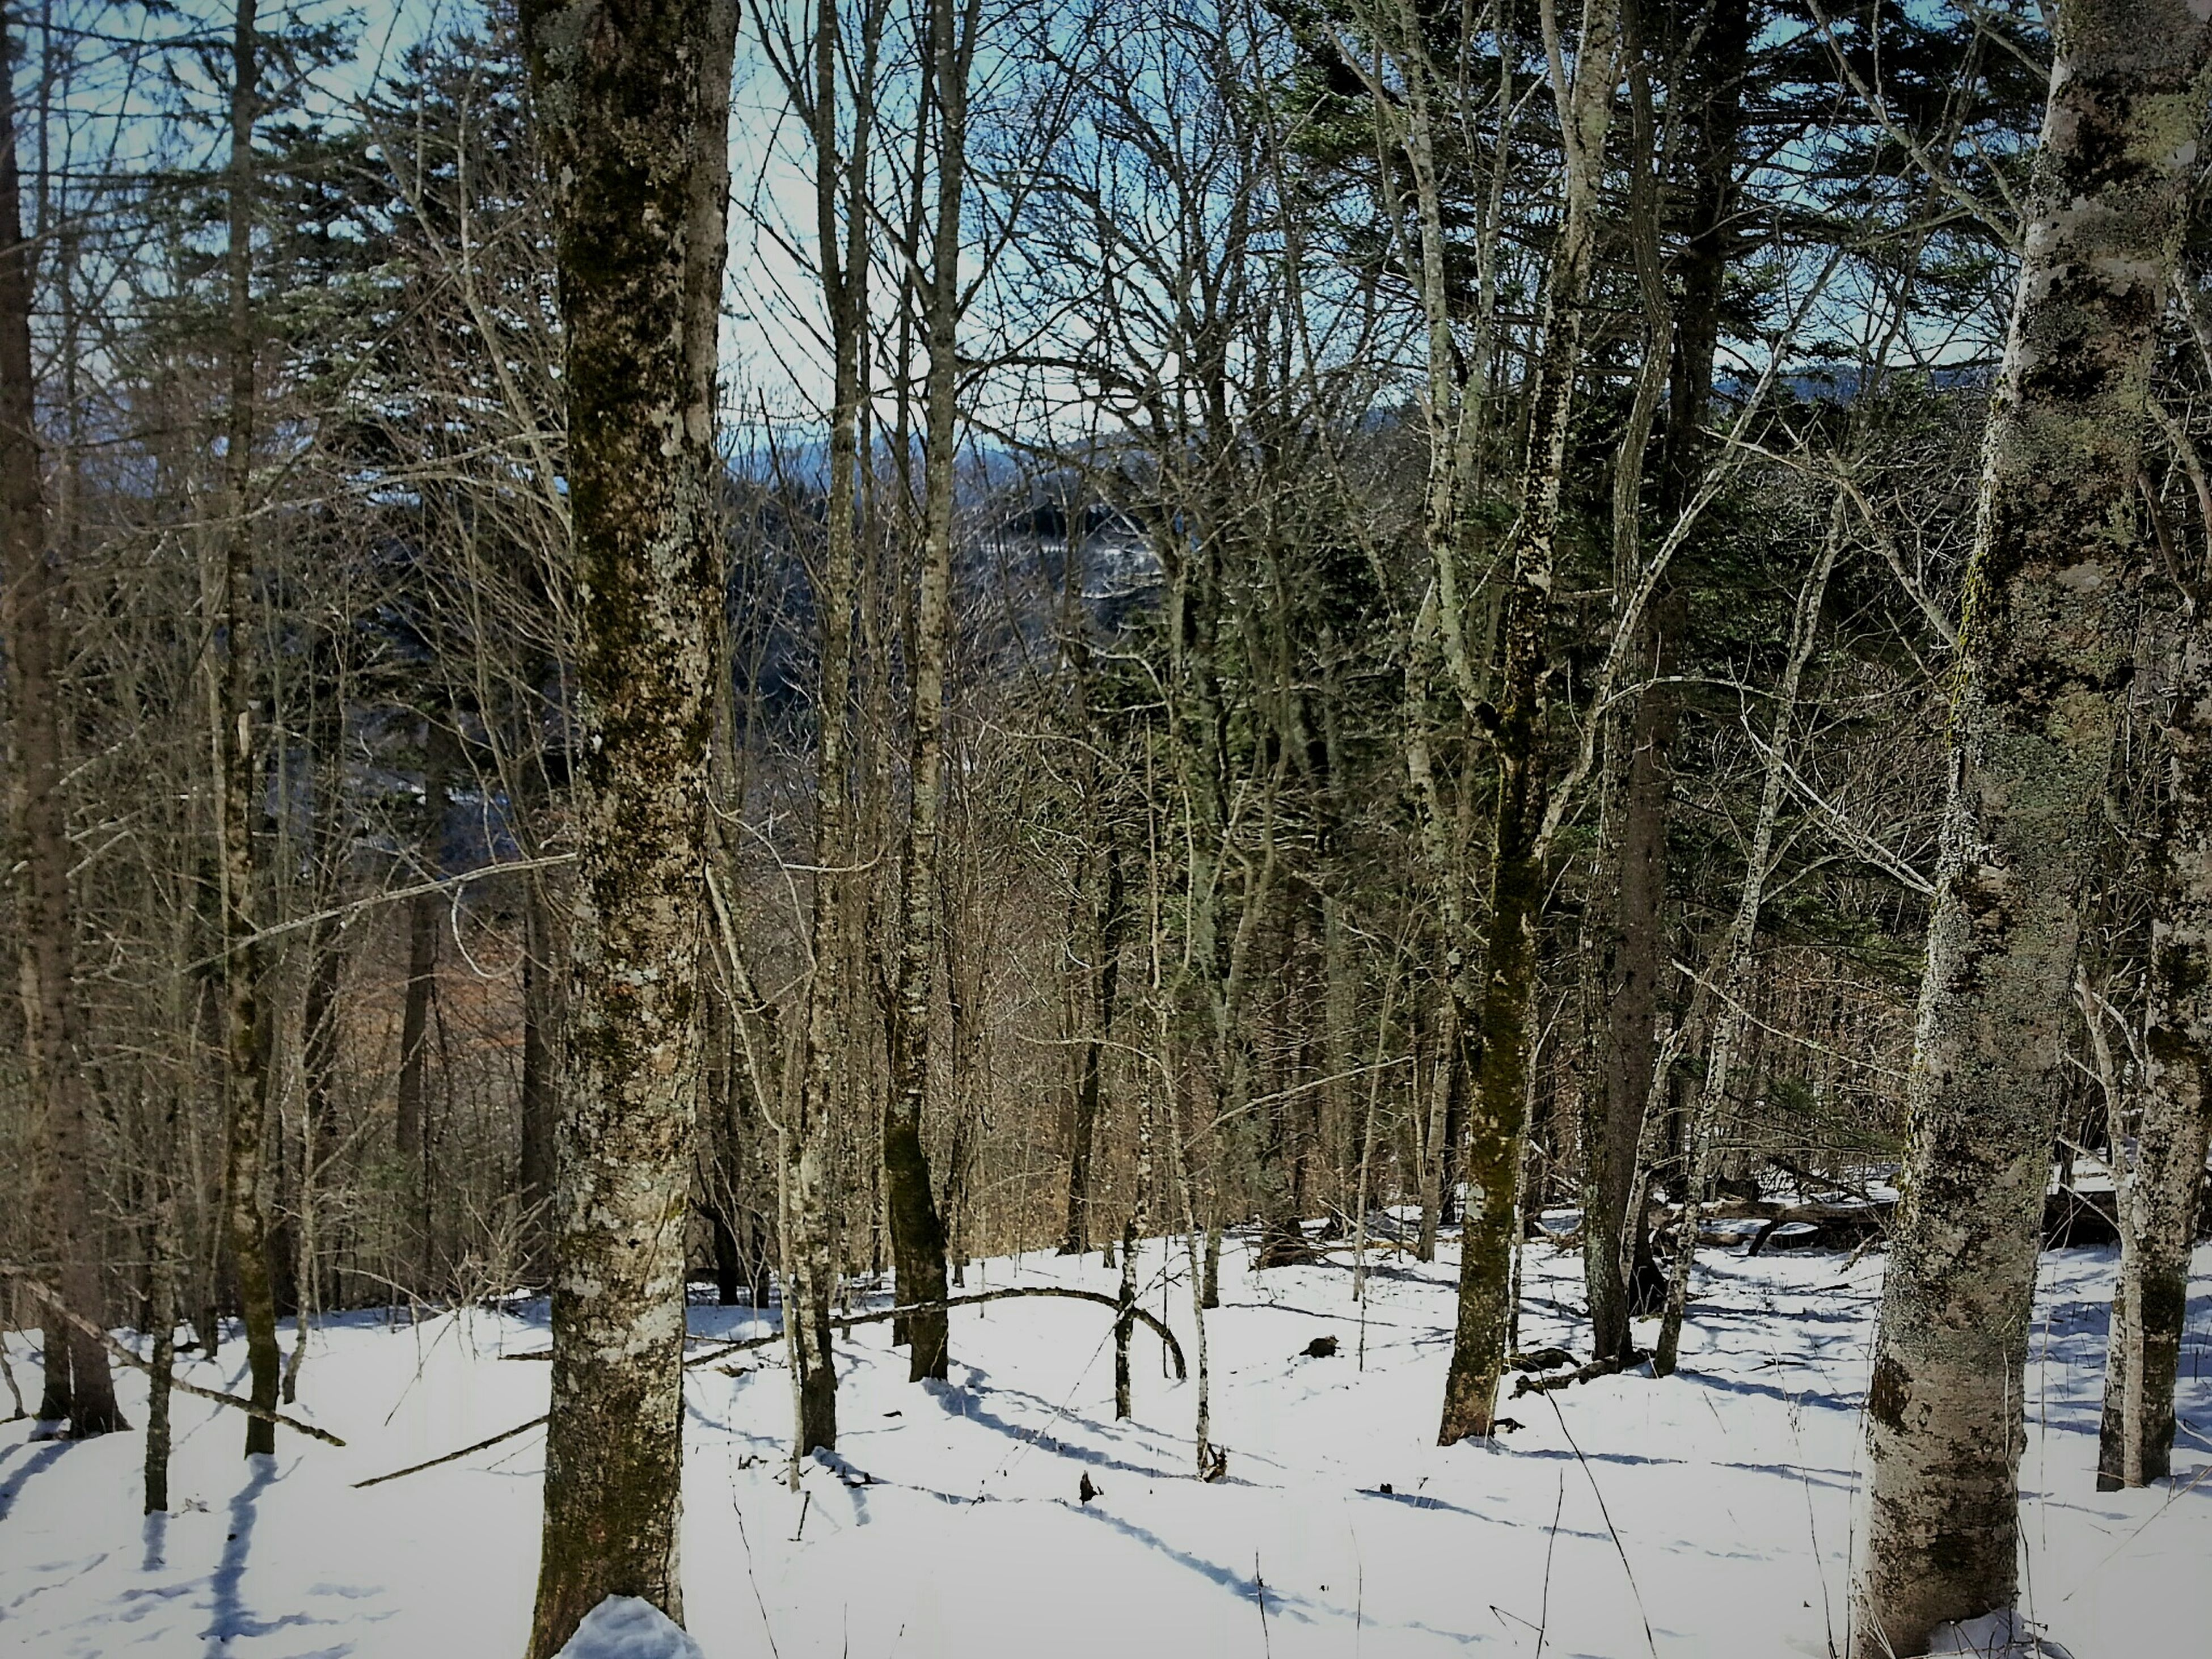 snow, winter, cold temperature, tree, season, bare tree, weather, tranquility, tranquil scene, landscape, covering, nature, beauty in nature, frozen, scenics, branch, tree trunk, forest, field, cold